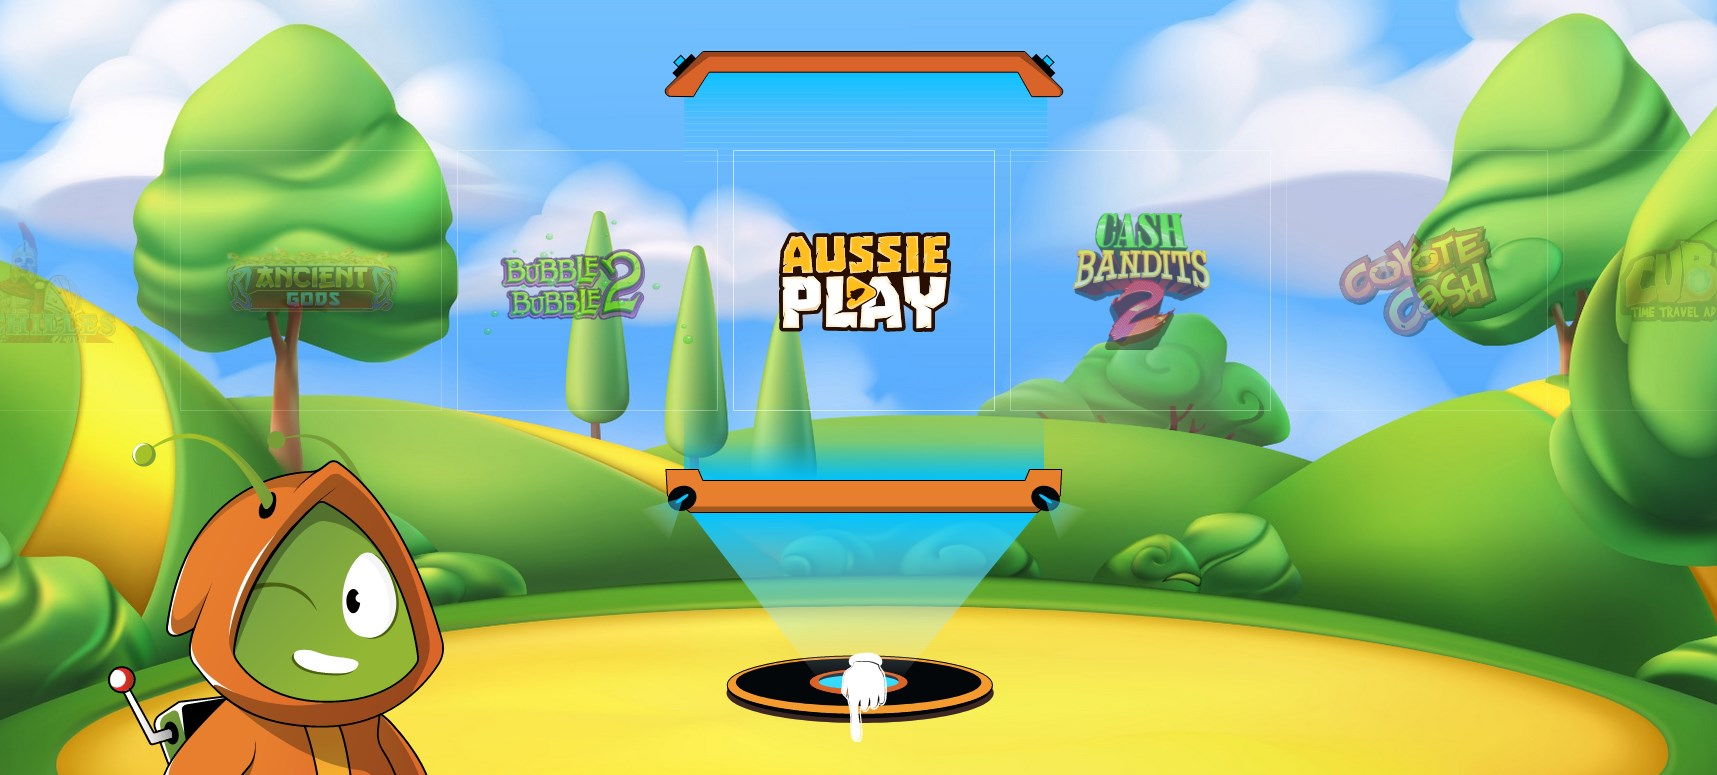 About AussiePlay